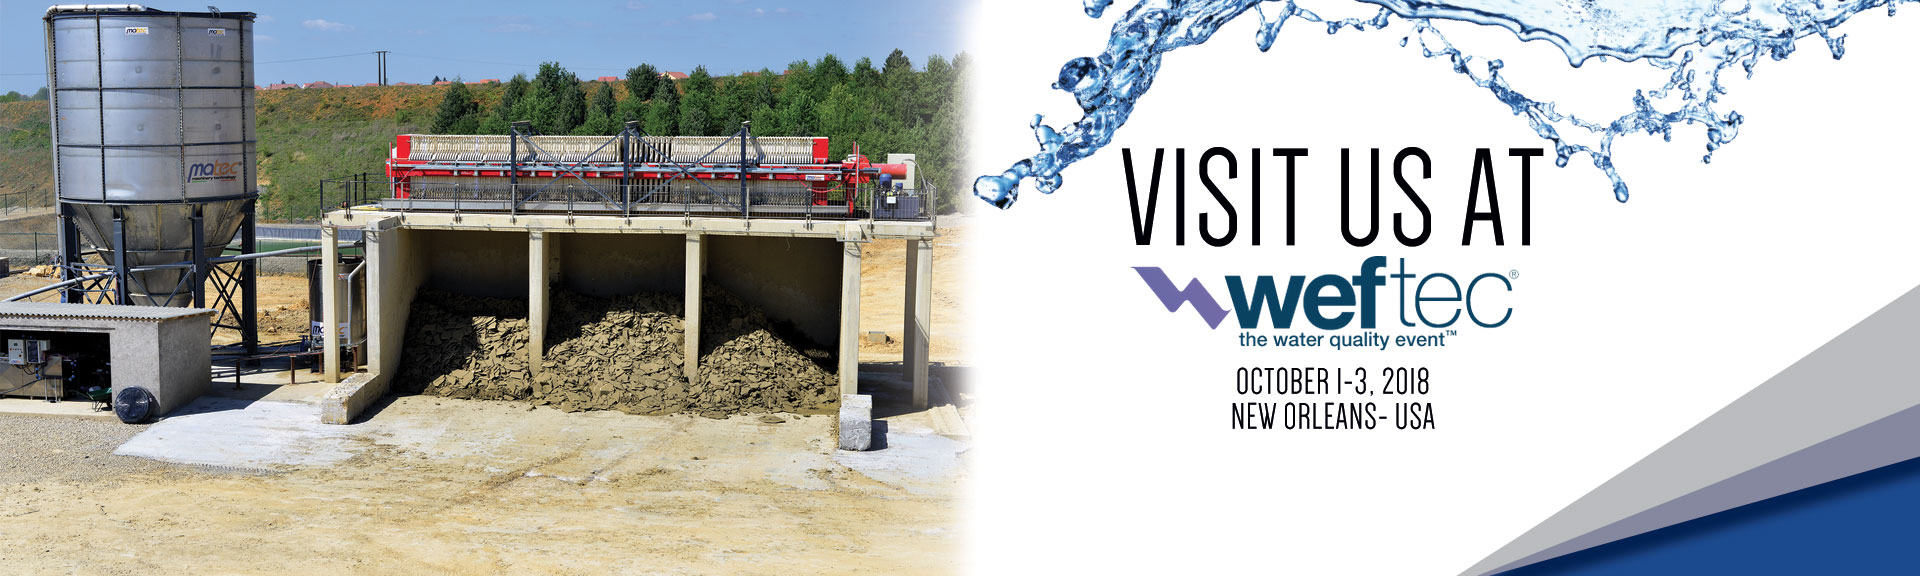 WEFTEC 2018, 1-3 October New Orleans USA